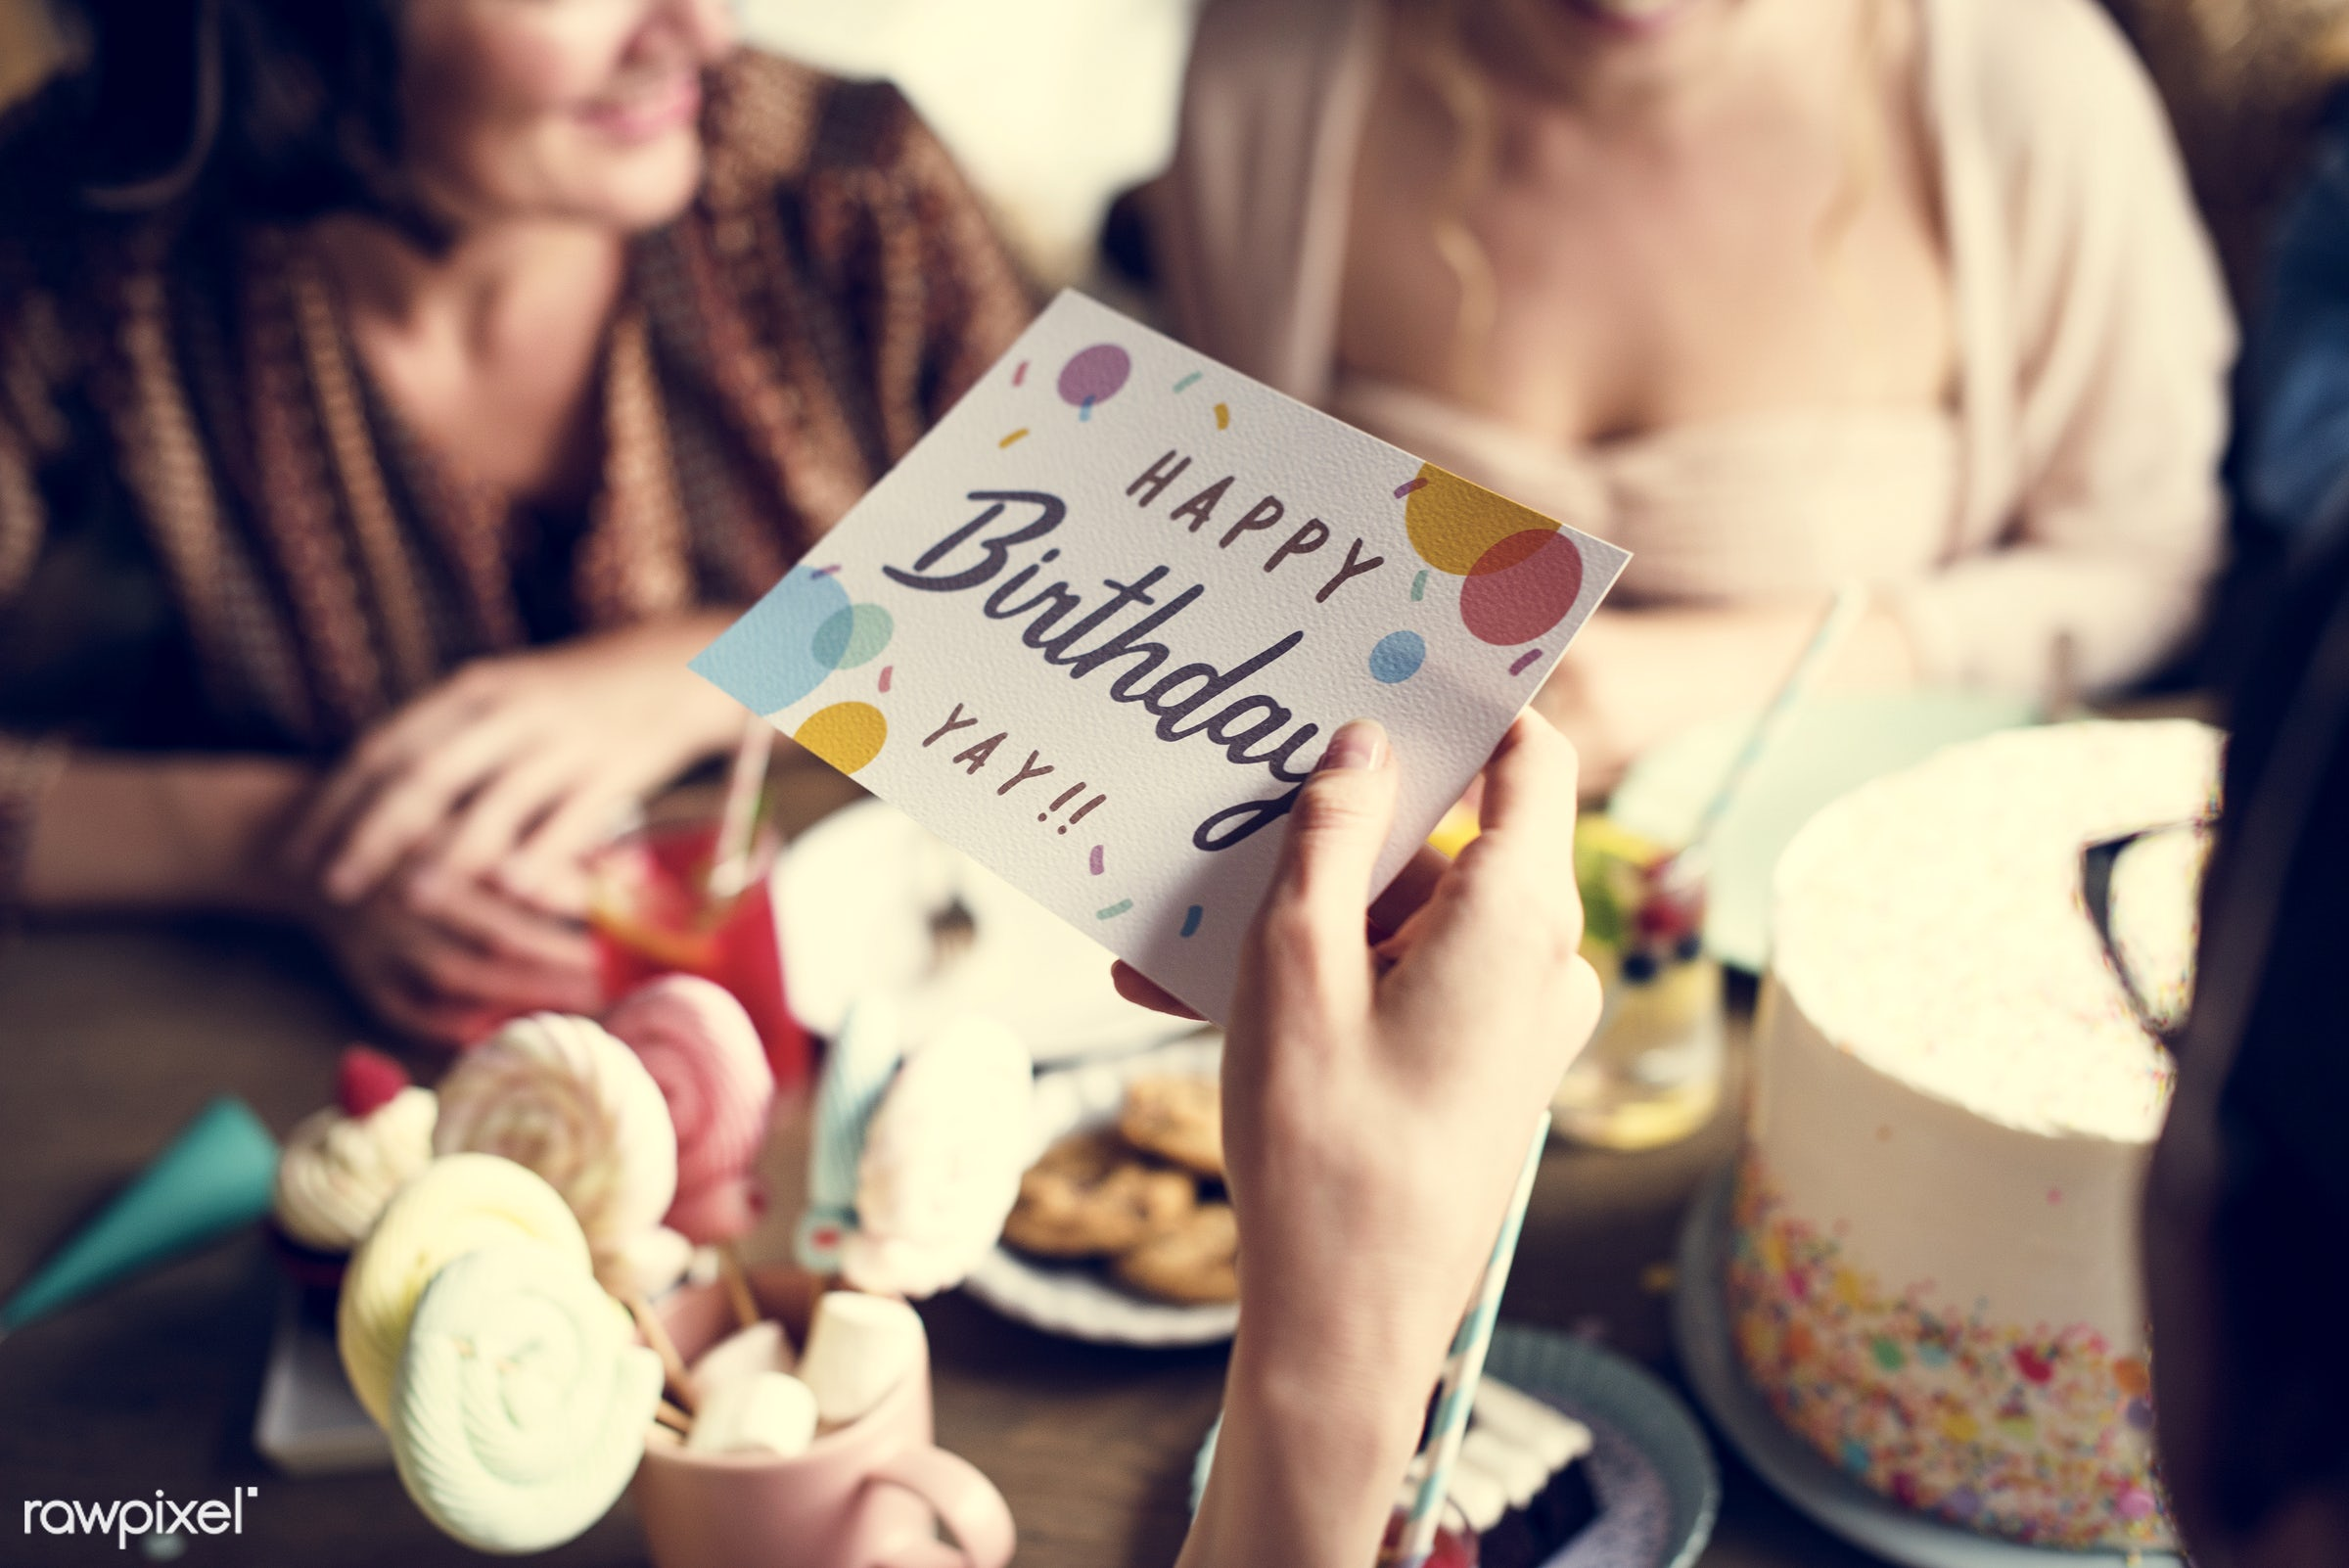 person, wish, relax, diverse, party, people, friends, bakery, gather, woman, hangout, friendship, gathering, card, cheerful...